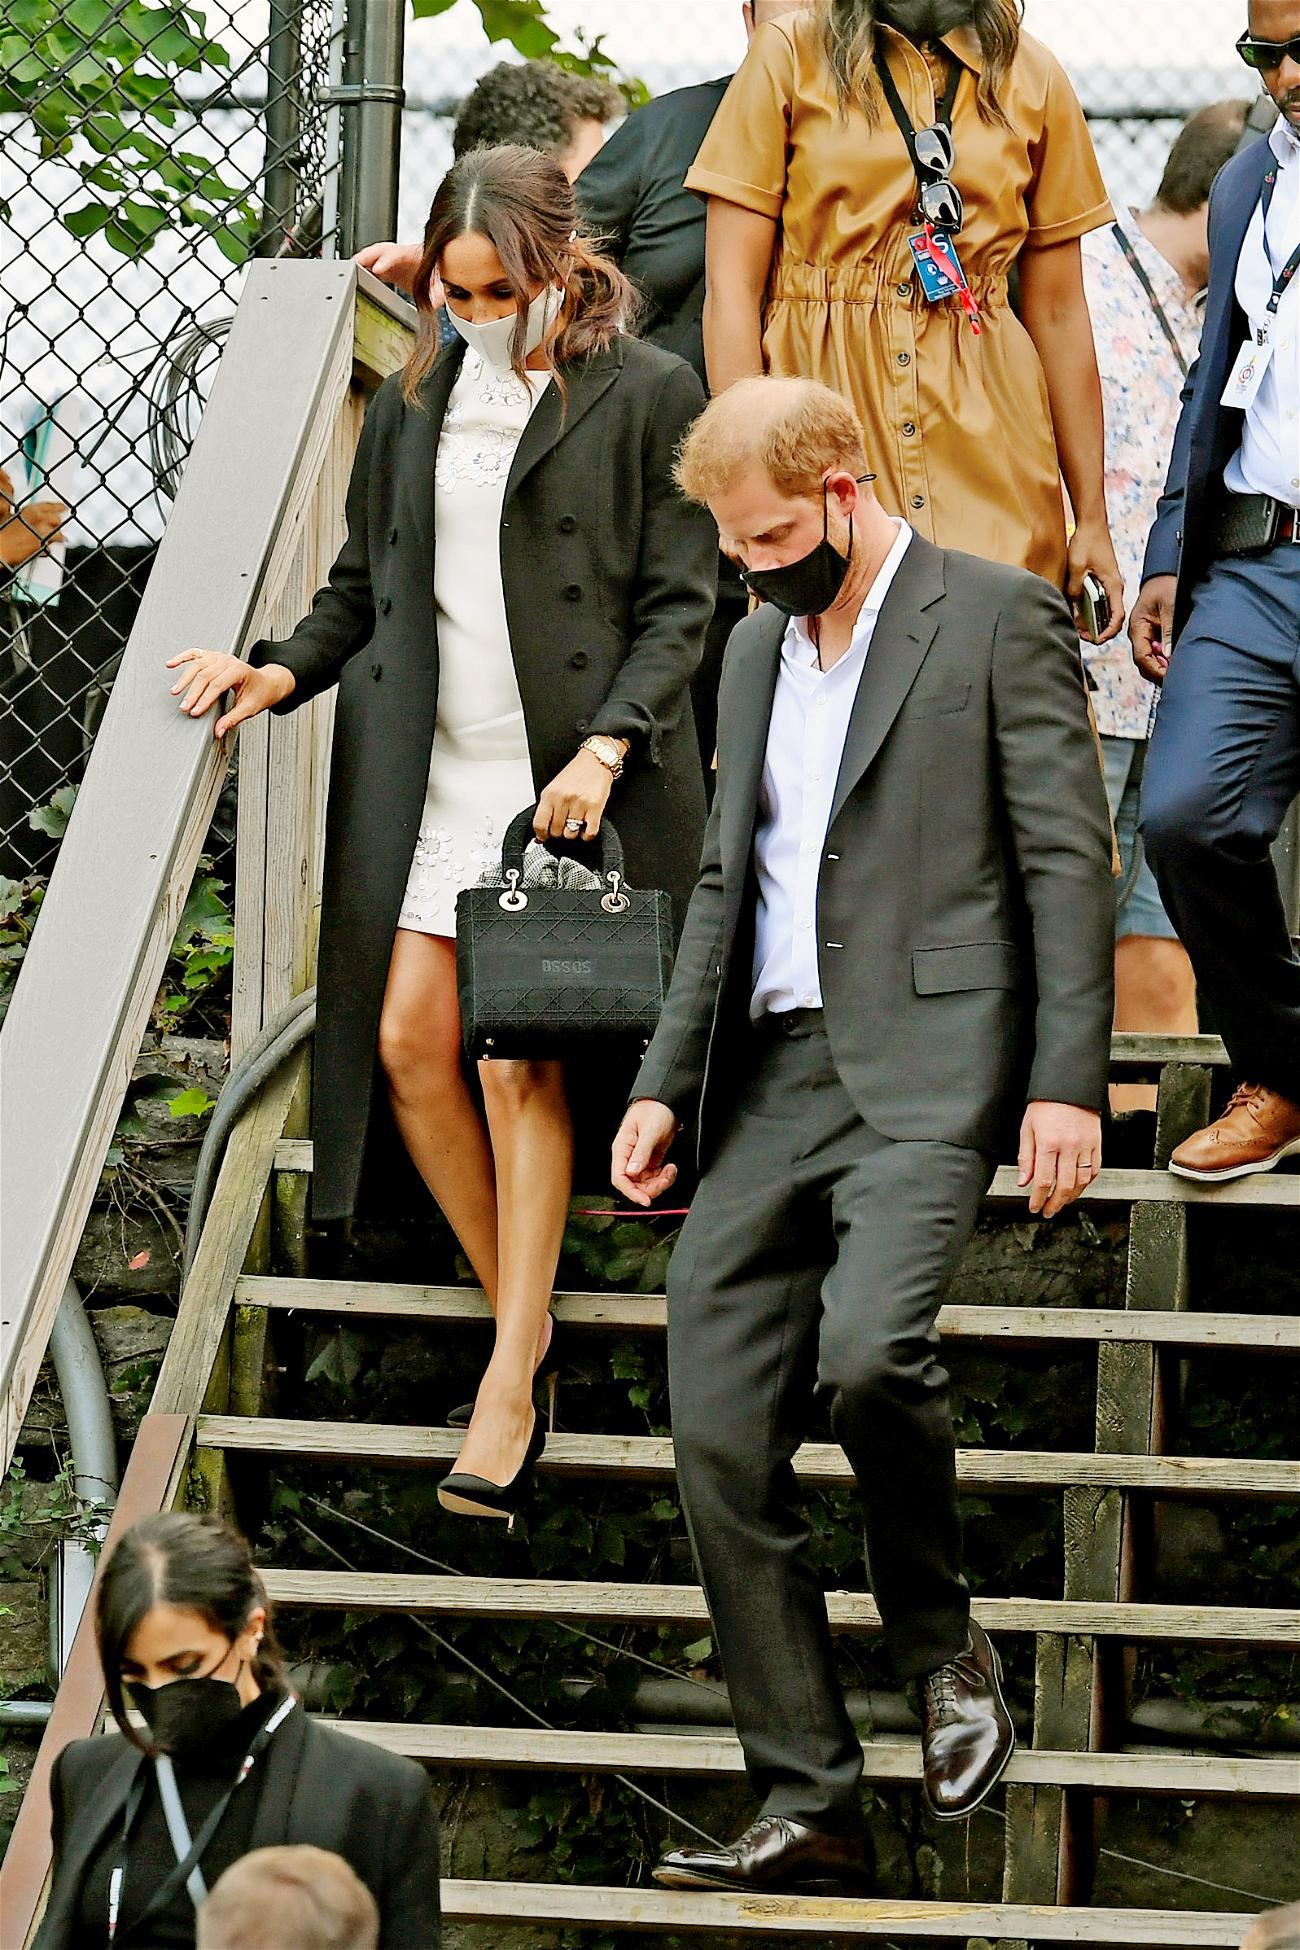 Prince Harry and Meghan Markle leave Global Citizen event in Central Park